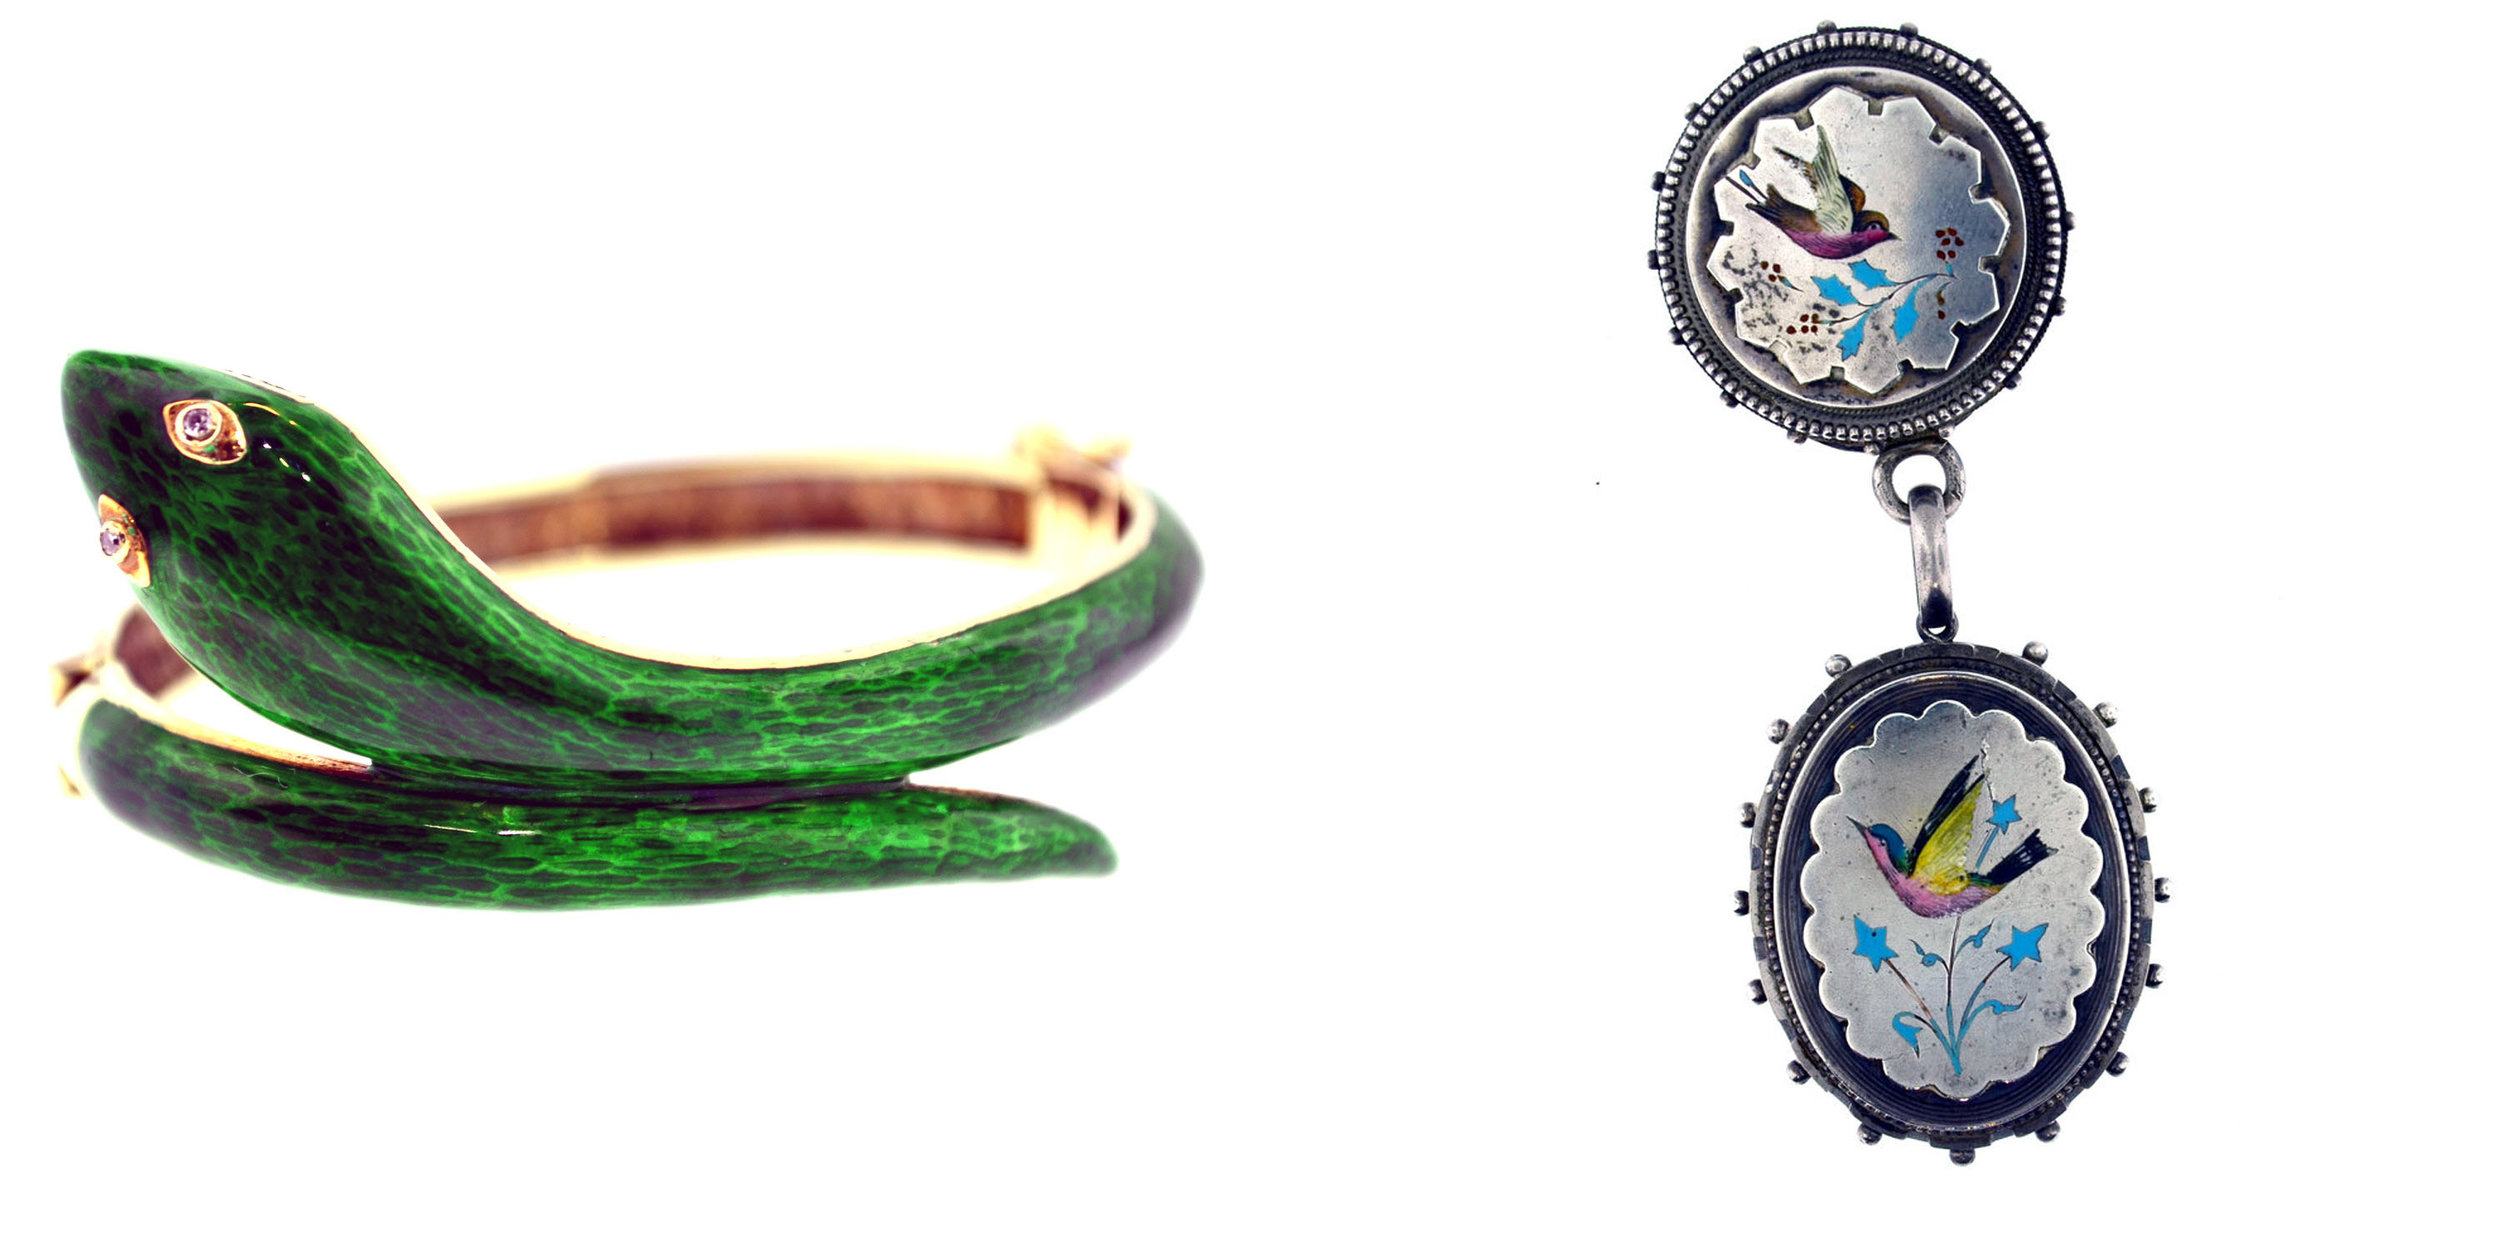 "Left: A 14 karat yellow gold serpent bangle with diamond eyes, and basse taille green enameled skin, c. 1900 Available at Victoriana Antique and Fine Jewelry. Right: A sterling silver locket and pin-receiver set with a style of limoge enameling known as champlevé (meaning ""raised plane"" in french) c. 1880 Also available at Victoriana Antique & Fine Jewelry."